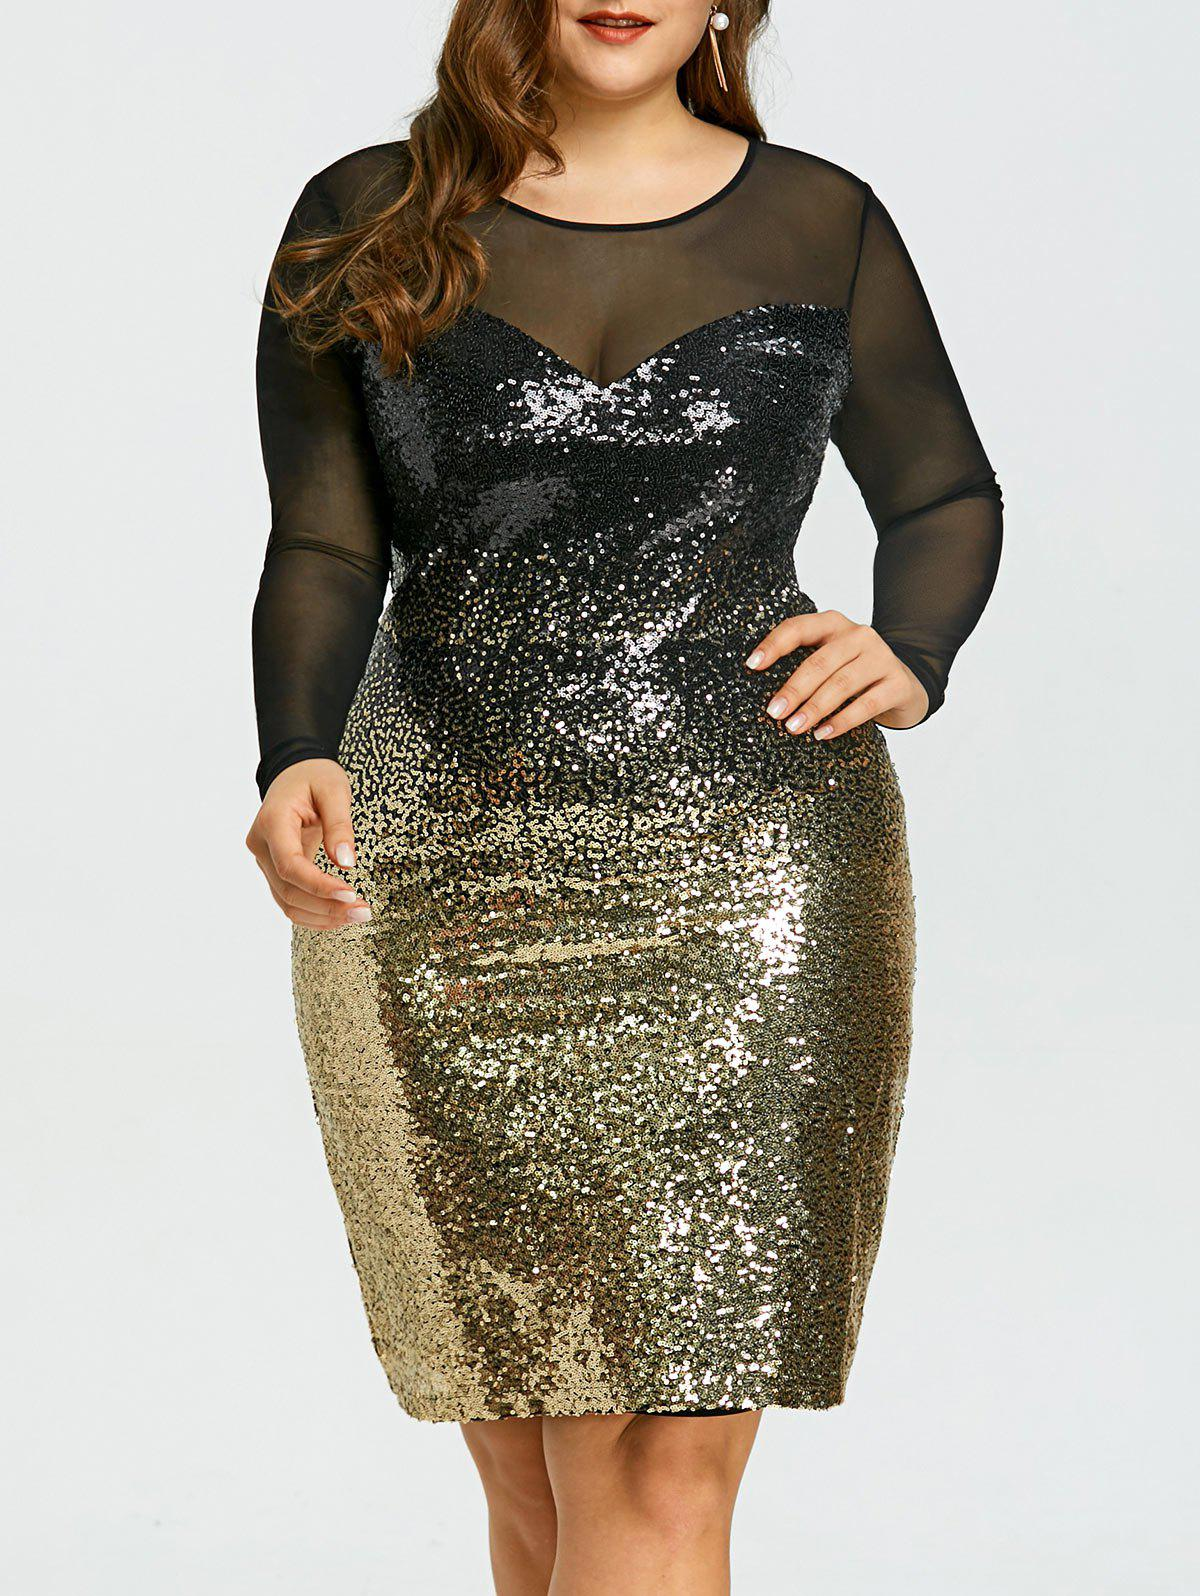 Plus Size Prom Dresses and Wedding Dresses, Lace and Club Dresses ...